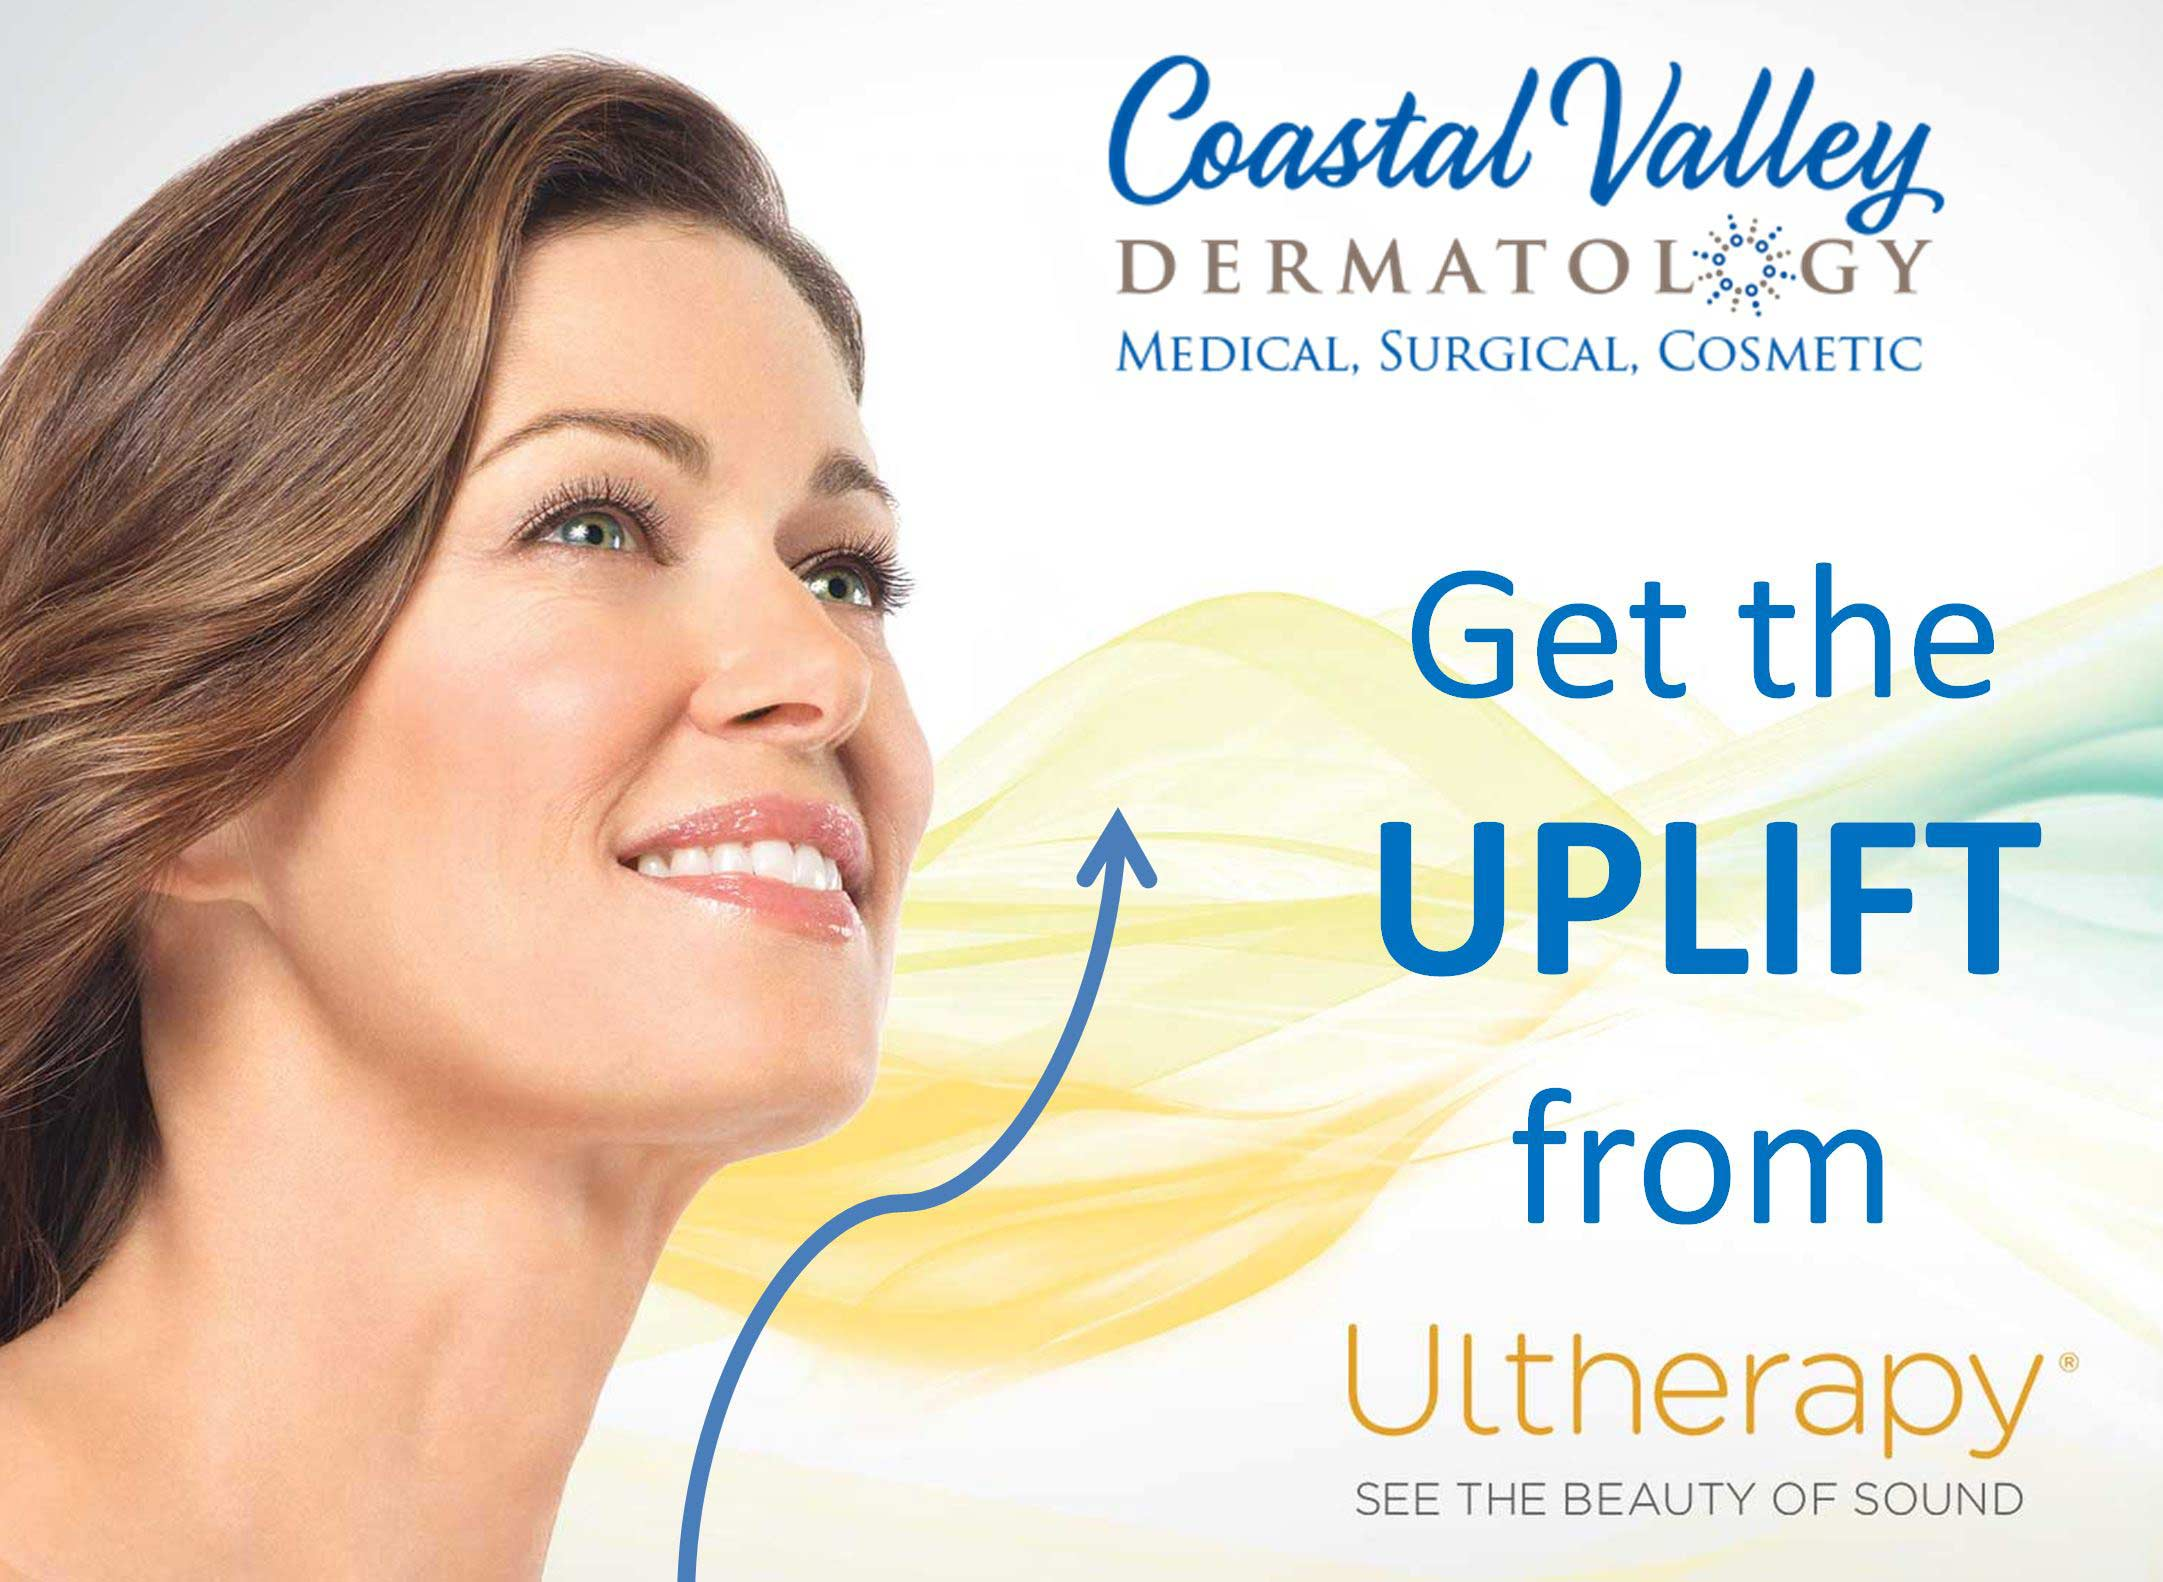 coastal-valley-dermatology-carmel-ultherapy-uplift-nonsurgical-photo